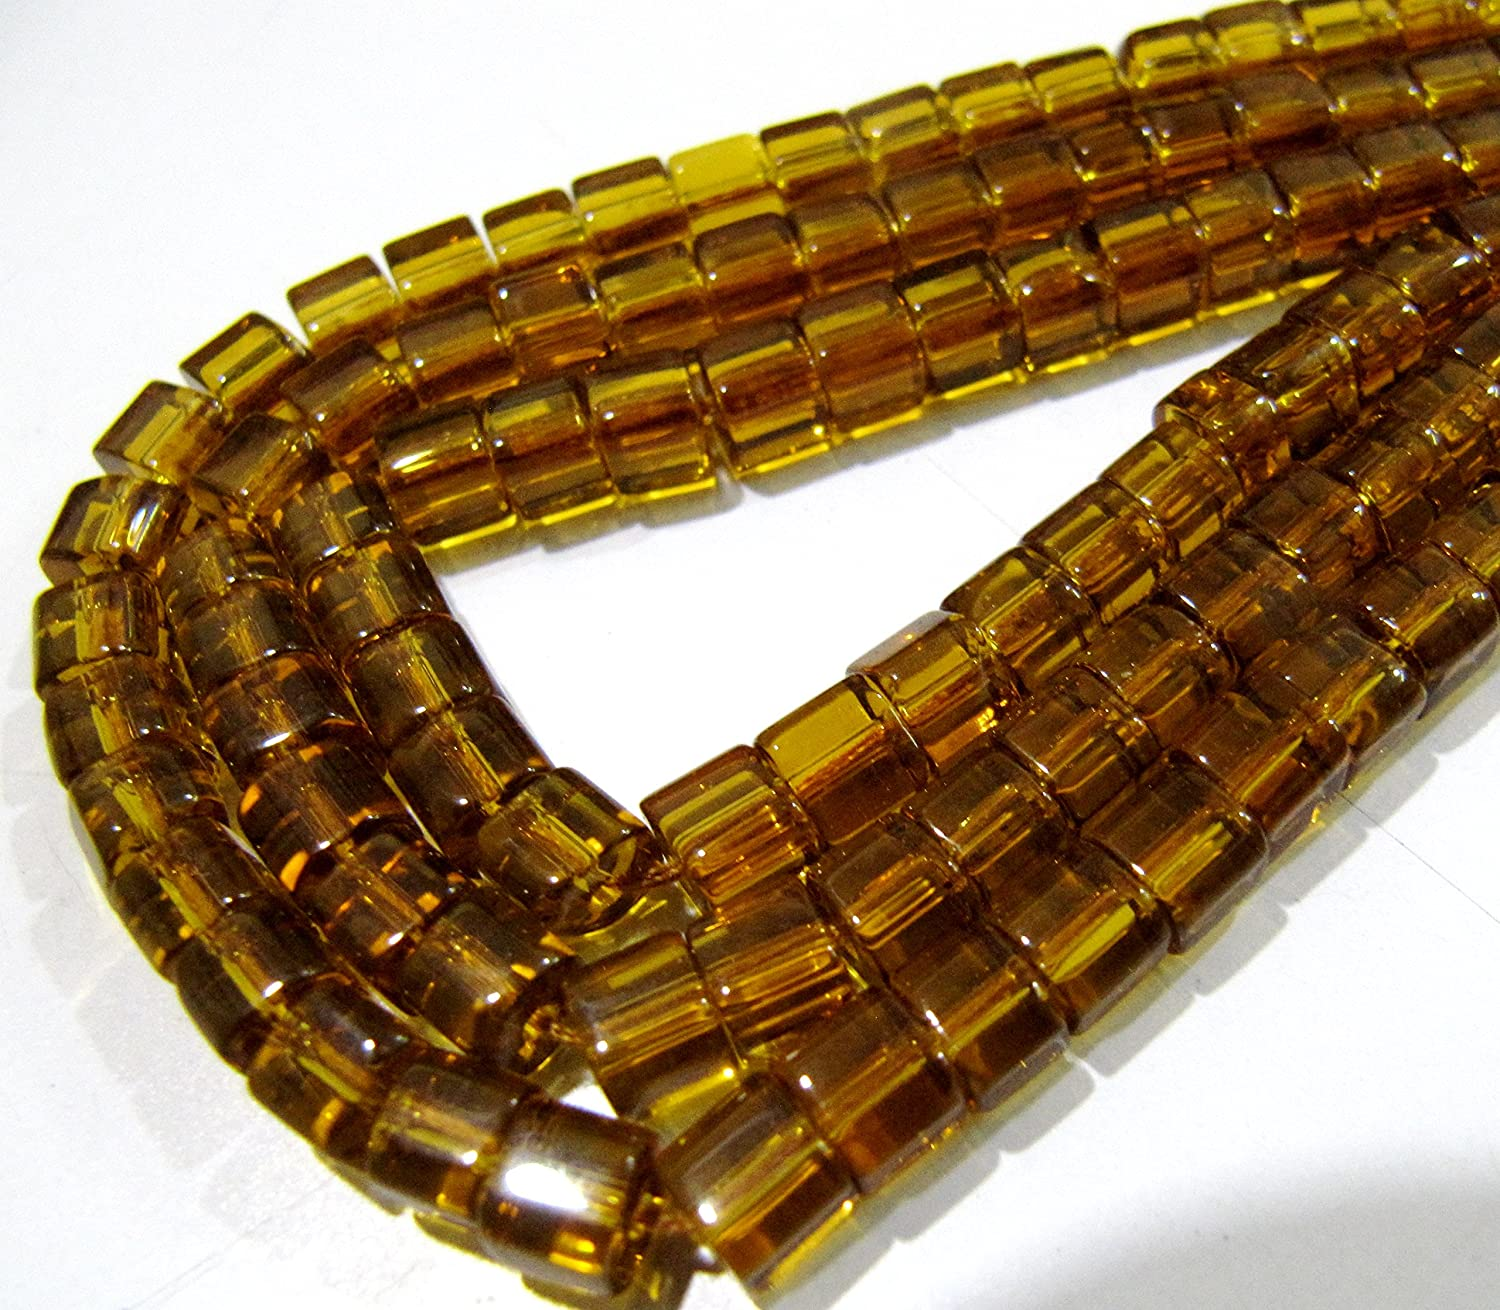 977b765035d Amazon.com  Best Quality Hydro Quartz Citrine Color Beads   5mm Size Smooth  Box Shape Beads   Strand 10 inch long   55 to 60 approx Beads per Strand   Arts